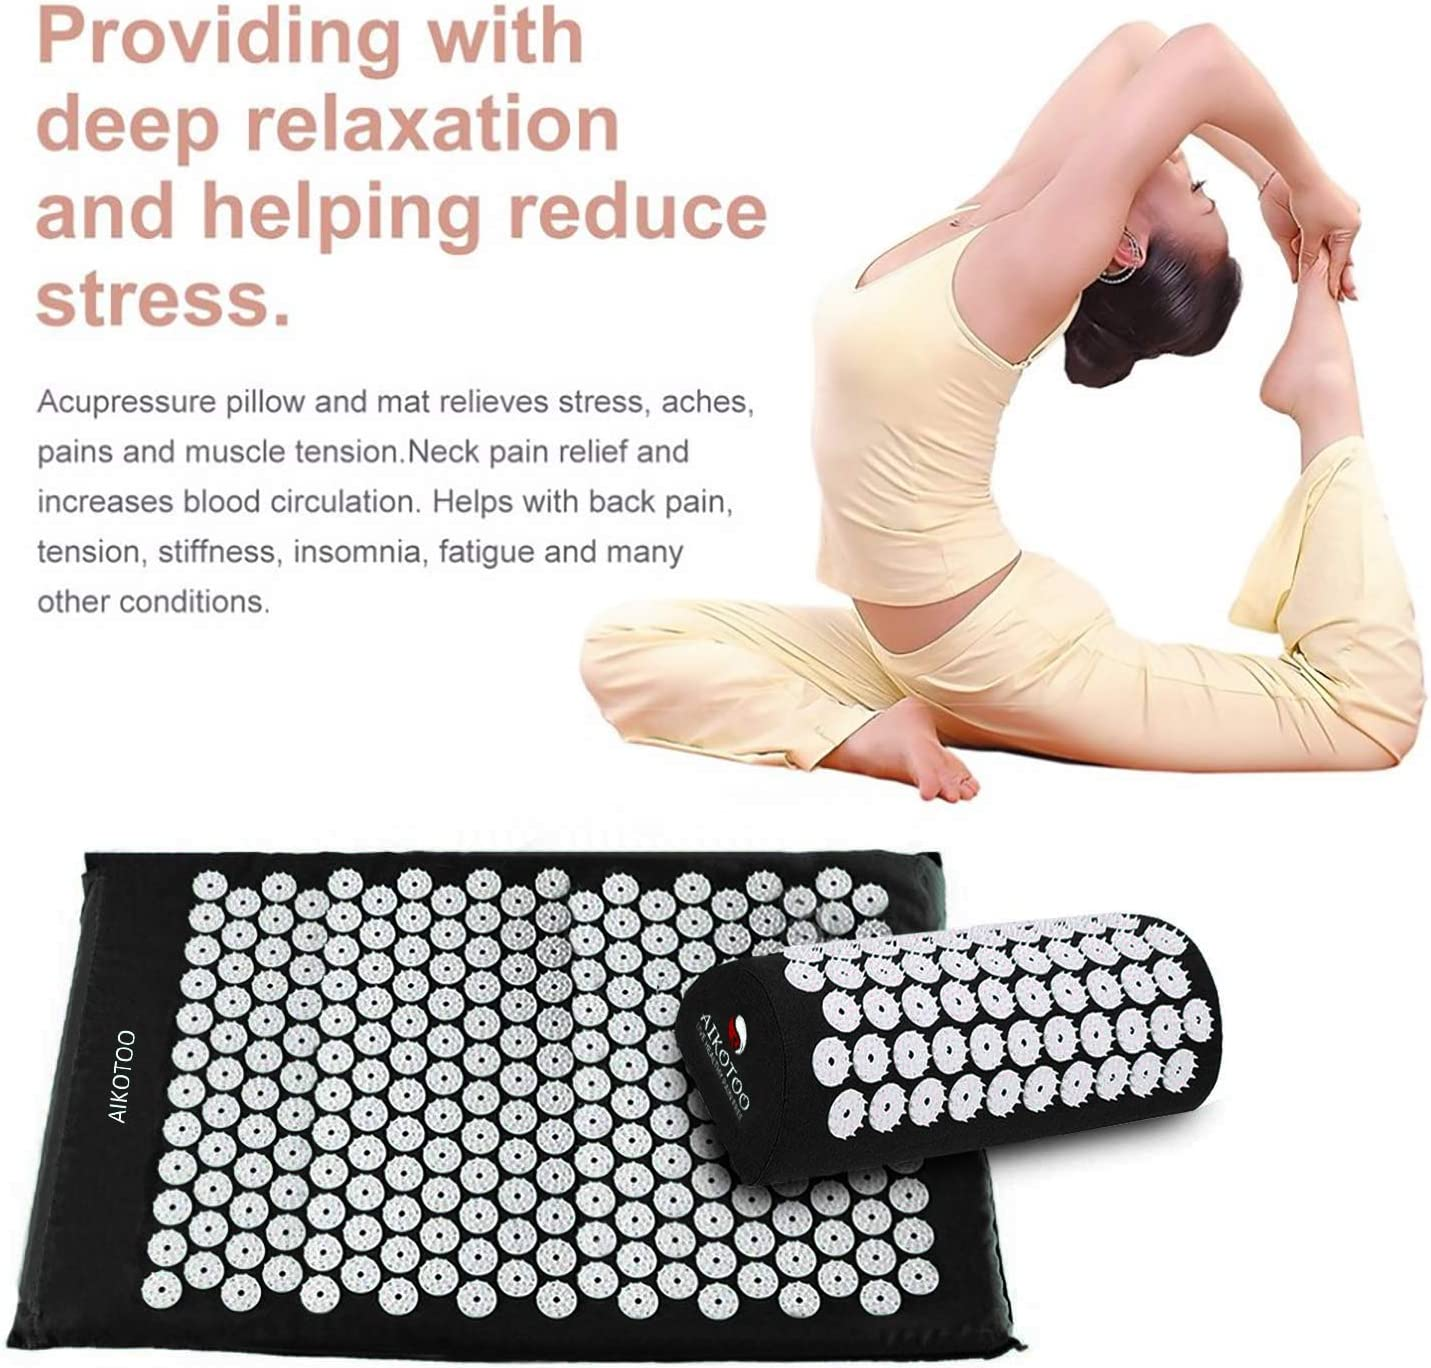 Acupressure Mat & Pillow Set for Sciatic Pain Back Pain & Neck Pain Relief (Black)